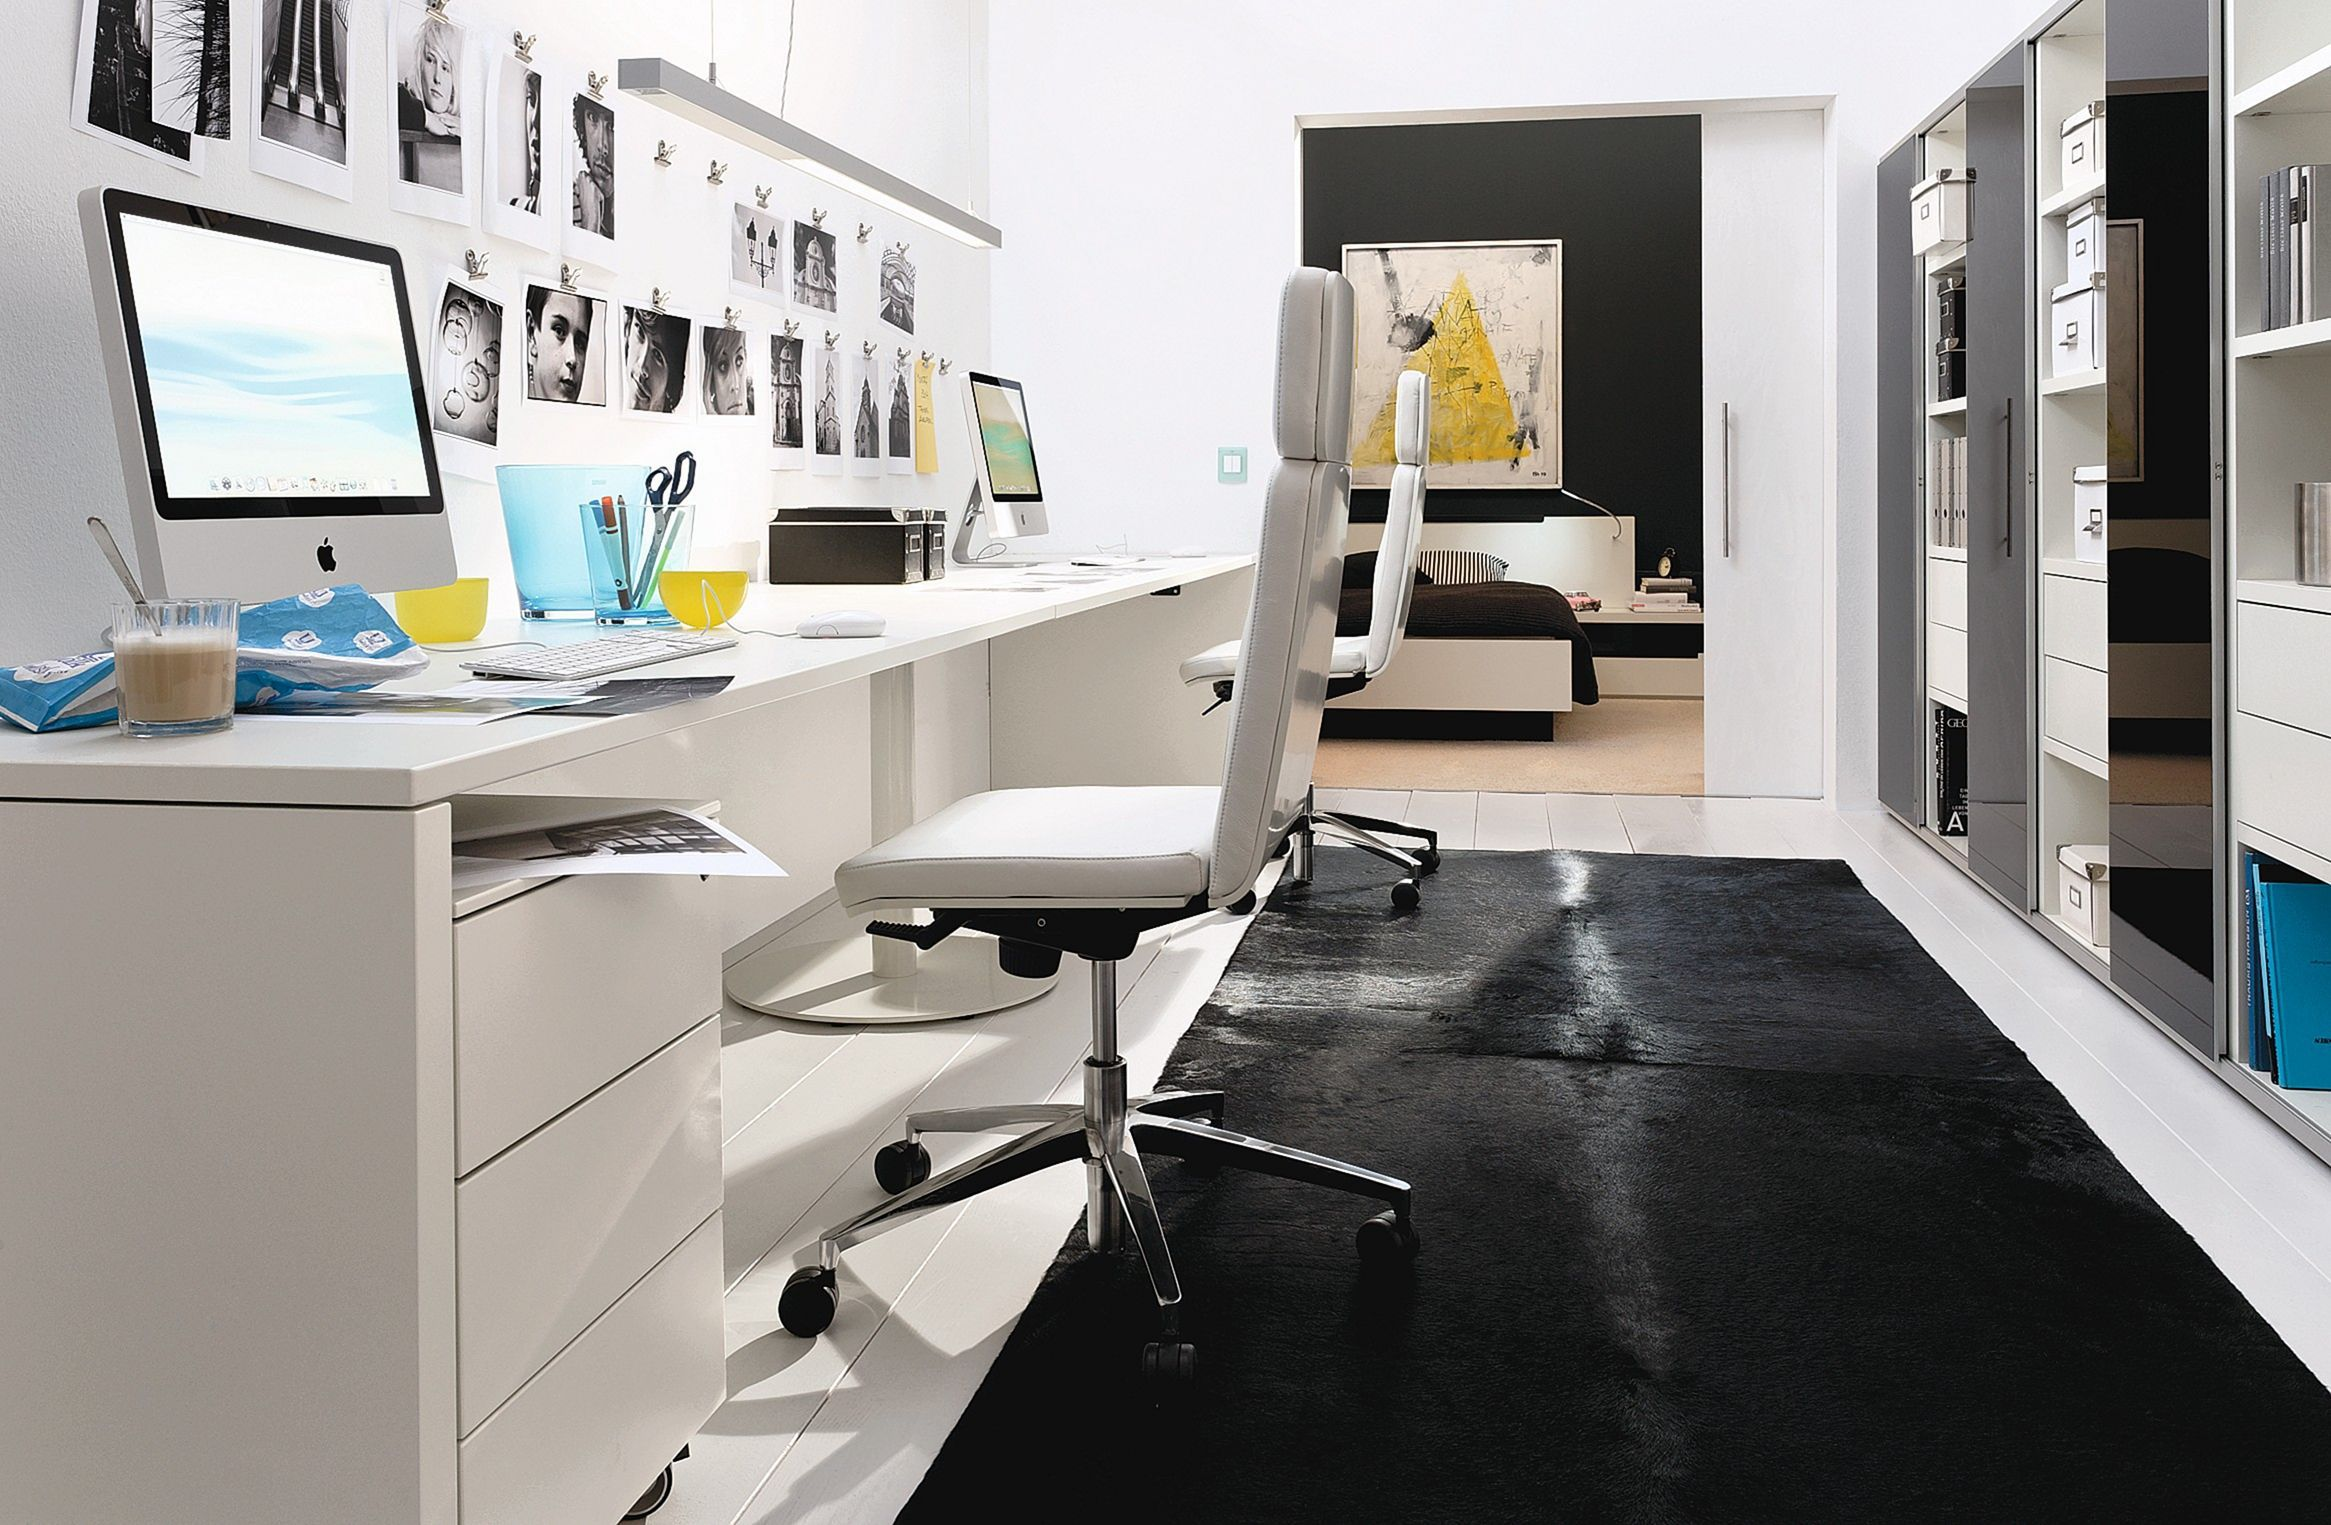 Make Your Work Improvement With 25 Best Modern Small Home Office